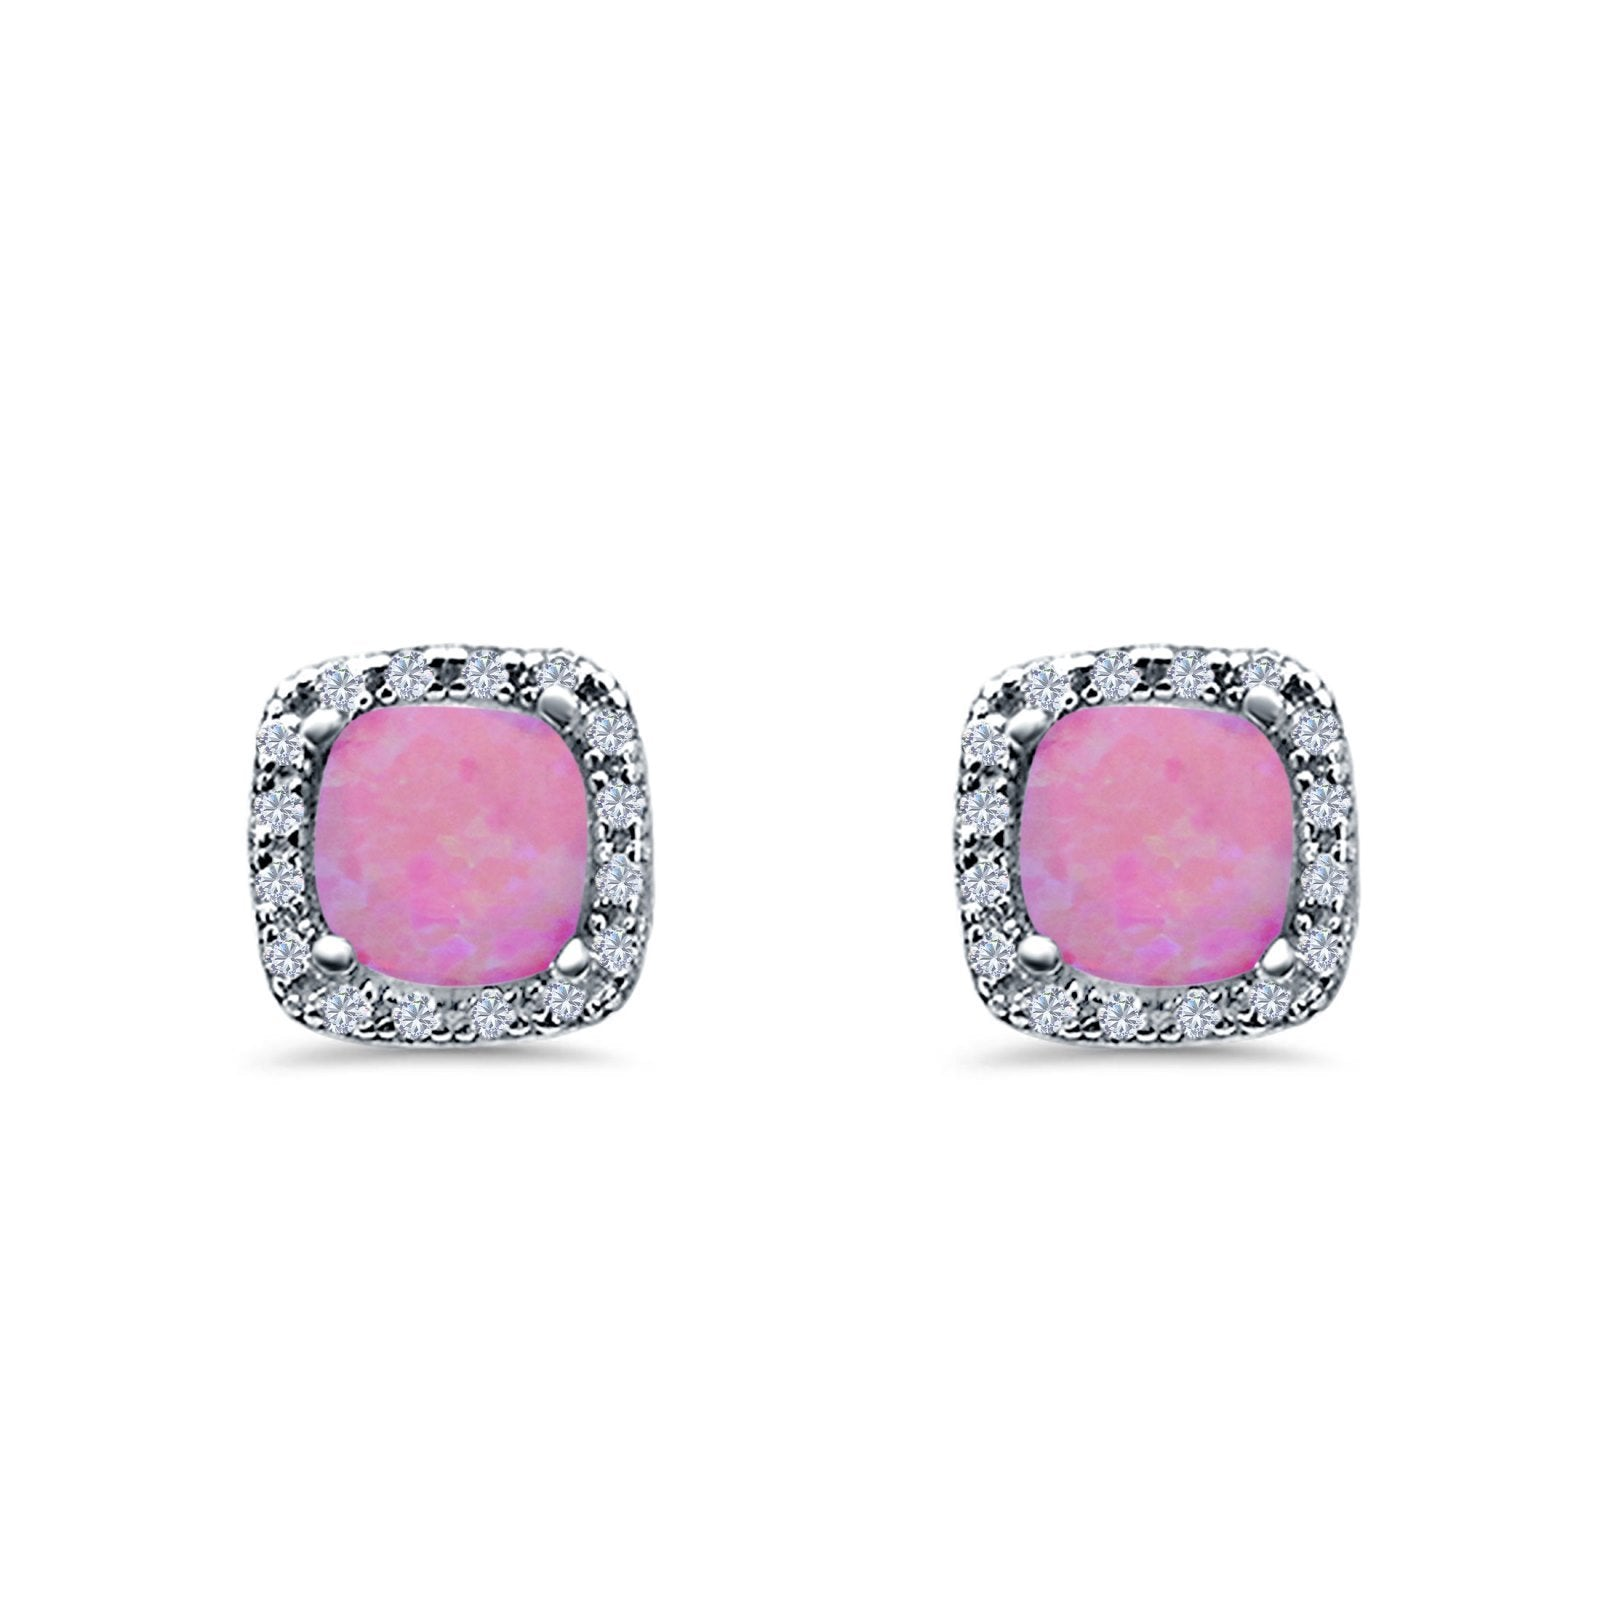 Halo Cushion Engagement Earrings Lab Created Pink Opal 925 Sterling Silver